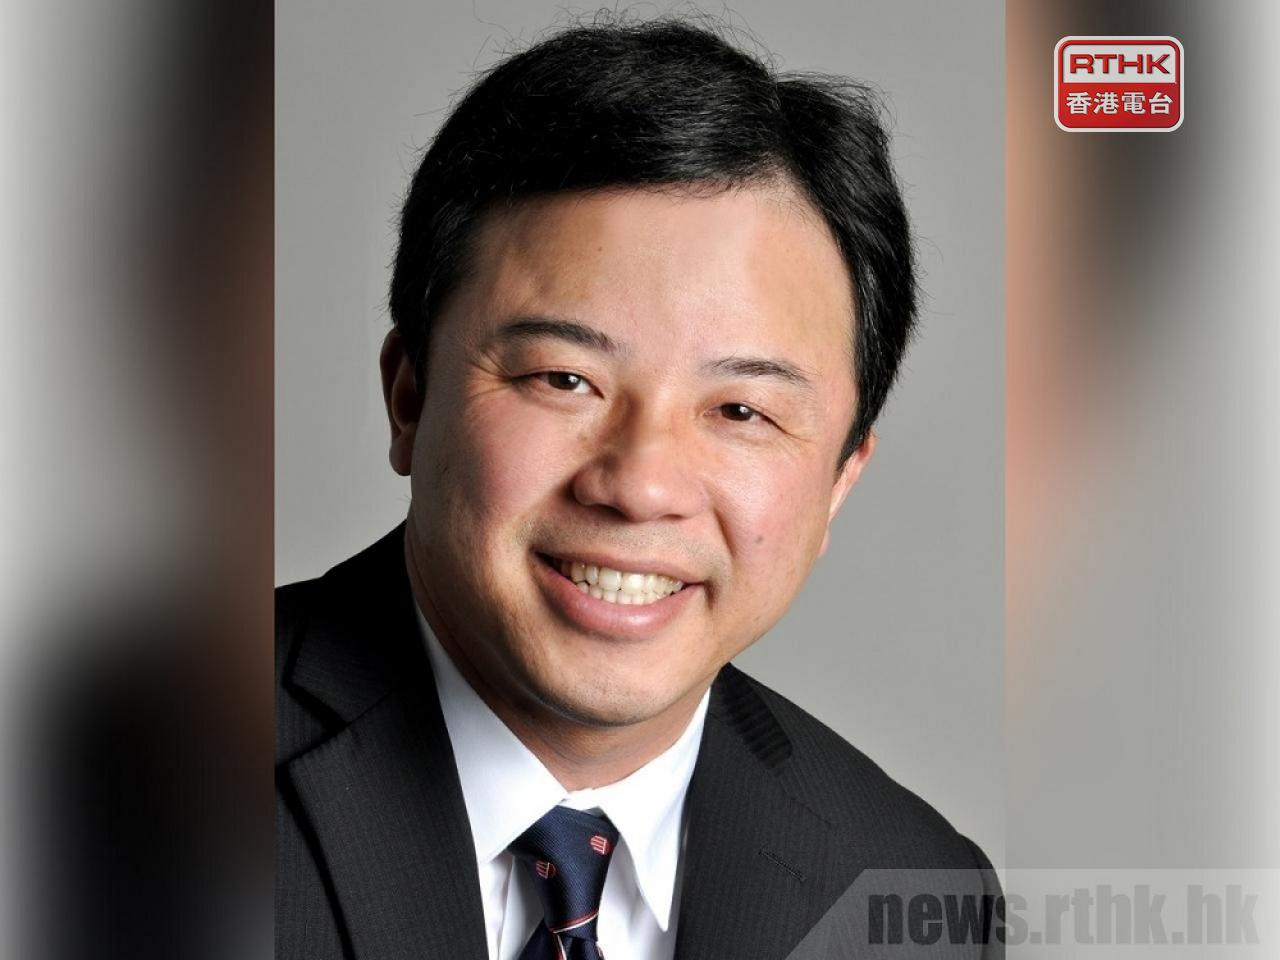 Zhang's initial five-year term was scheduled to run until 2023, but he has already been offered an extension to 2028. File photo: RTHK